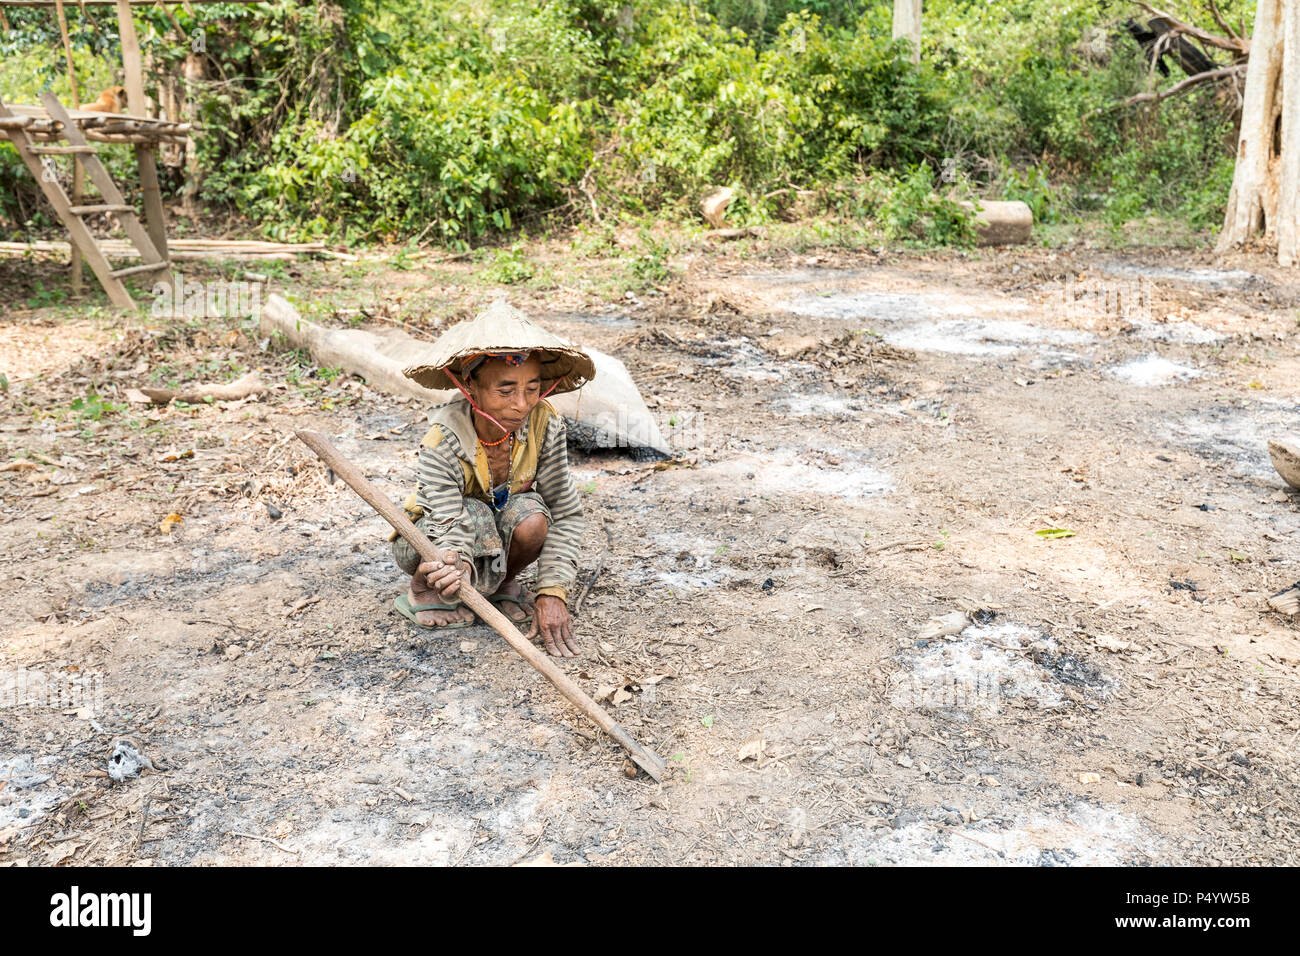 Woman digging in slash and burn cleared field preparing to plant crops, Nong Ping, Laos - Stock Image